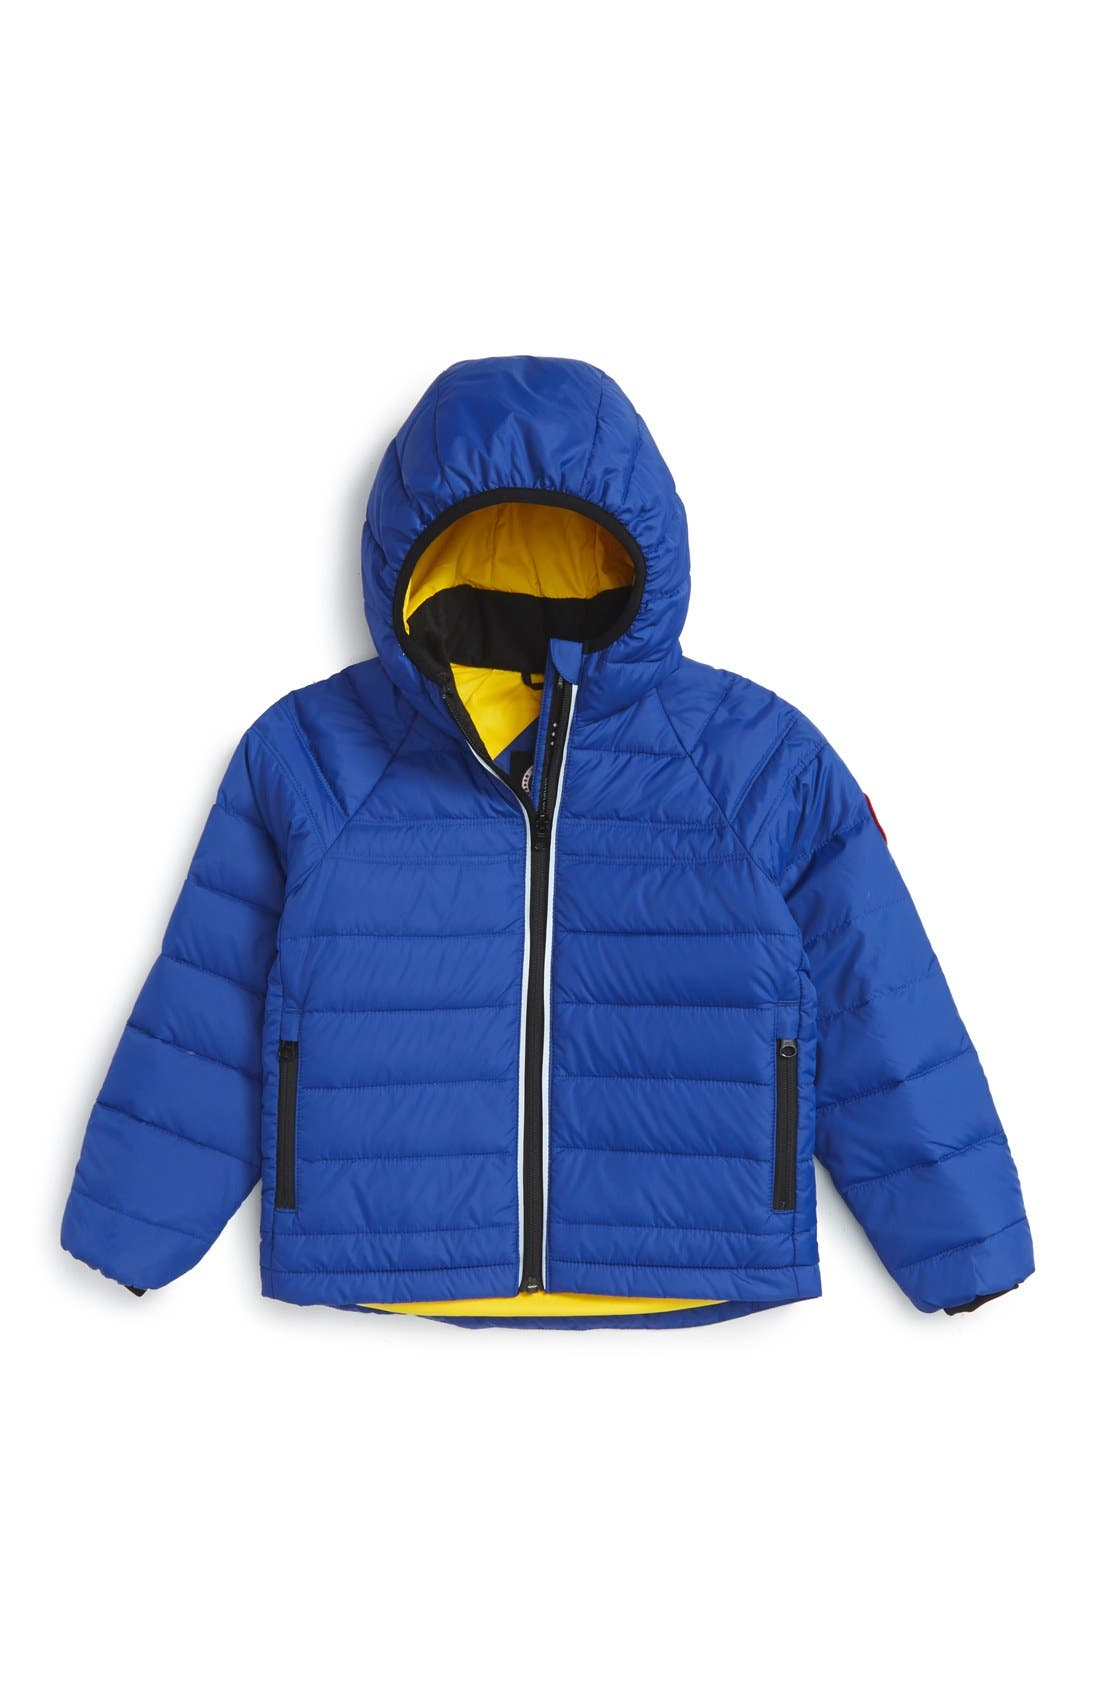 Alternate Image 1 Selected - Canada Goose 'Bobcat' Packable Down Coat (Toddler & Little Kid)